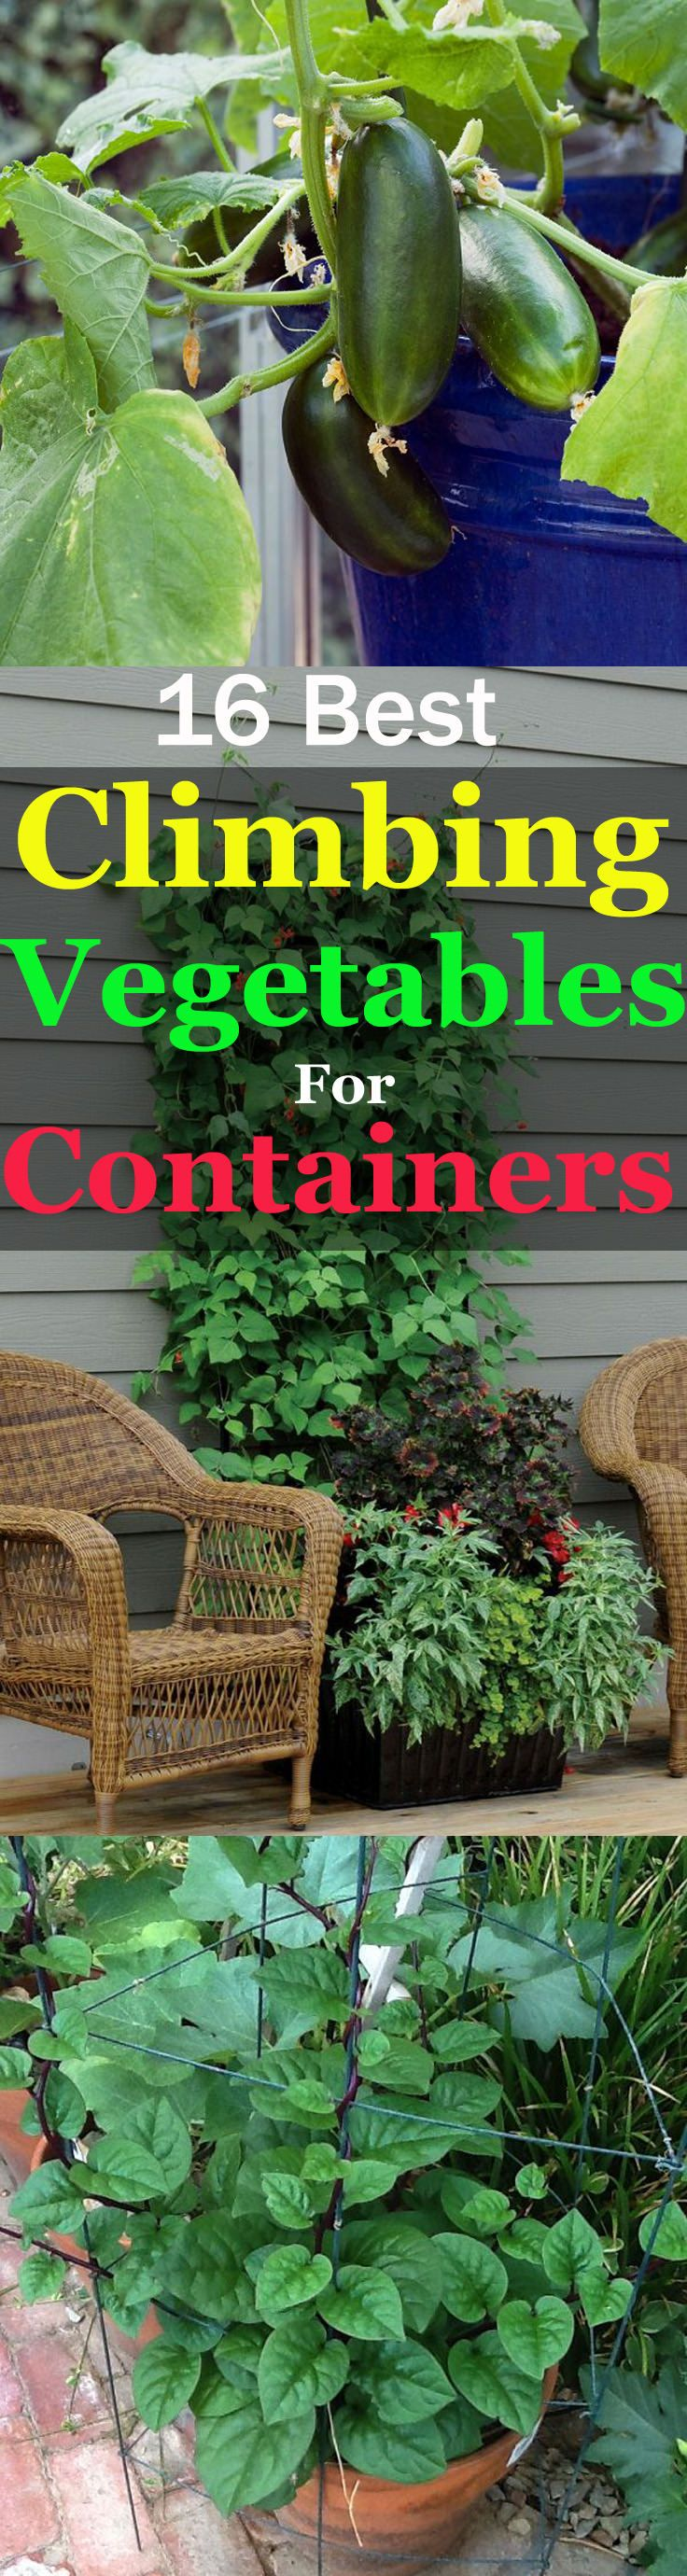 17 Best Climbing And Vining Vegetables For Containers You 400 x 300